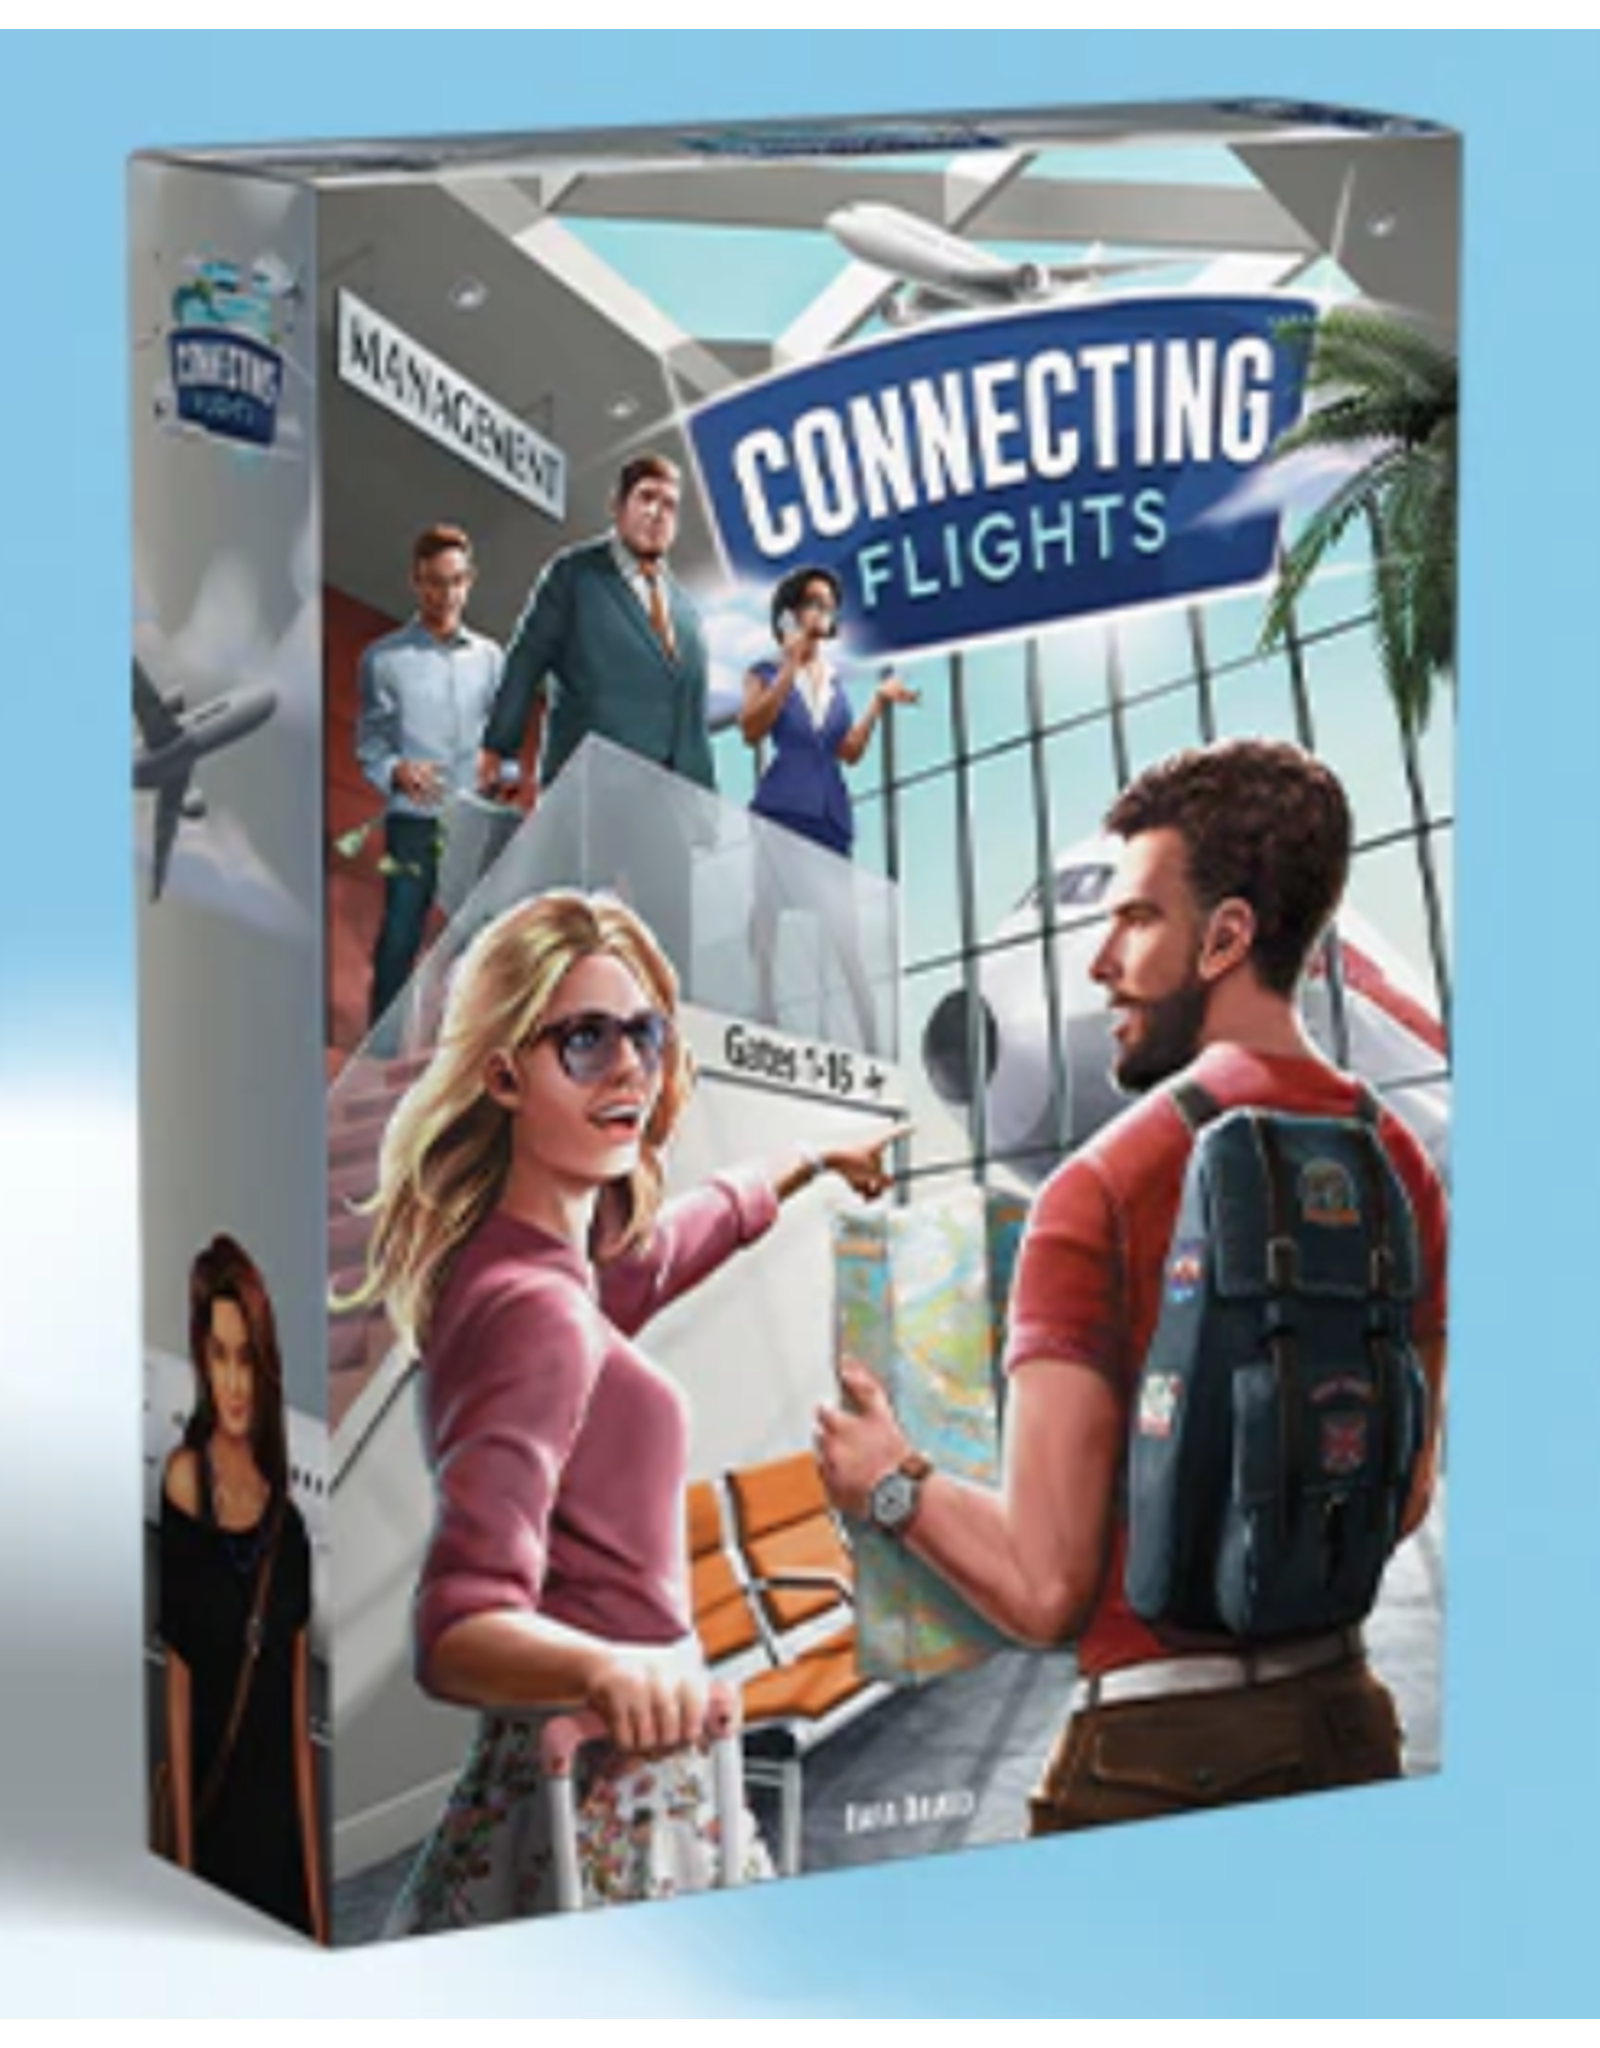 Connecting Flights: An Airline Management Board Game (Kickstarter, January)